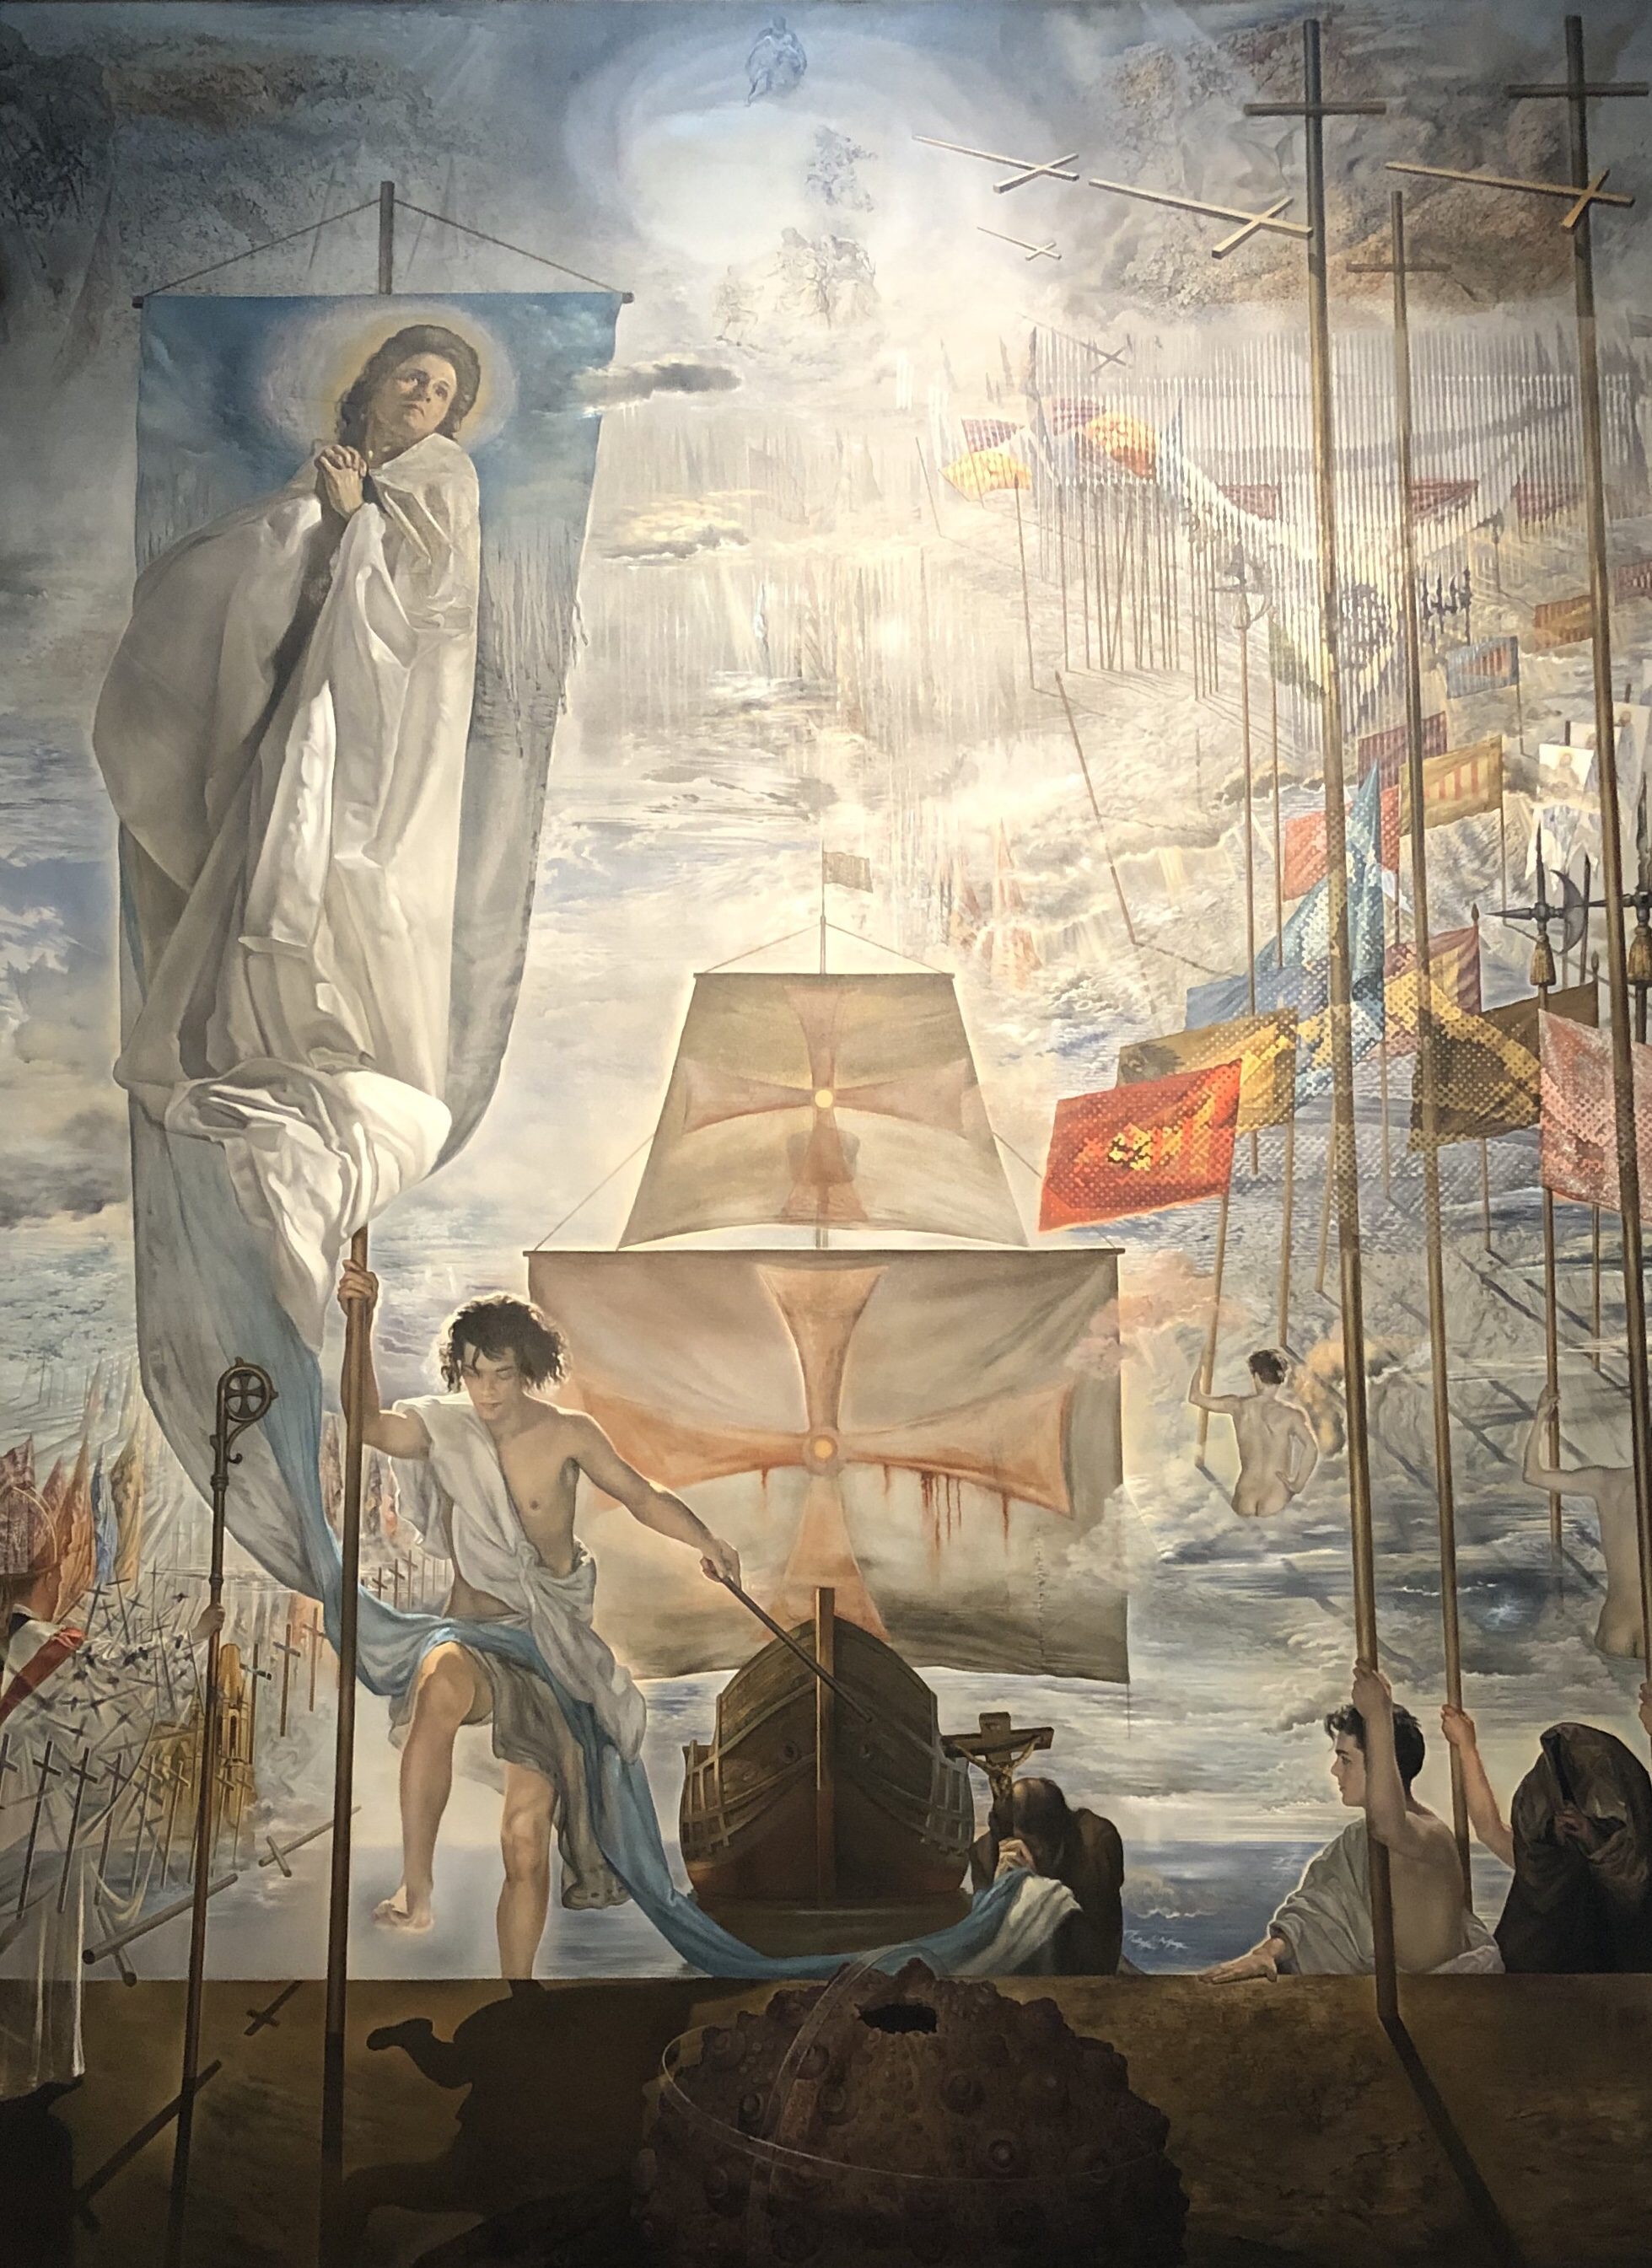 Dali's Christopher Columbus finding the new world